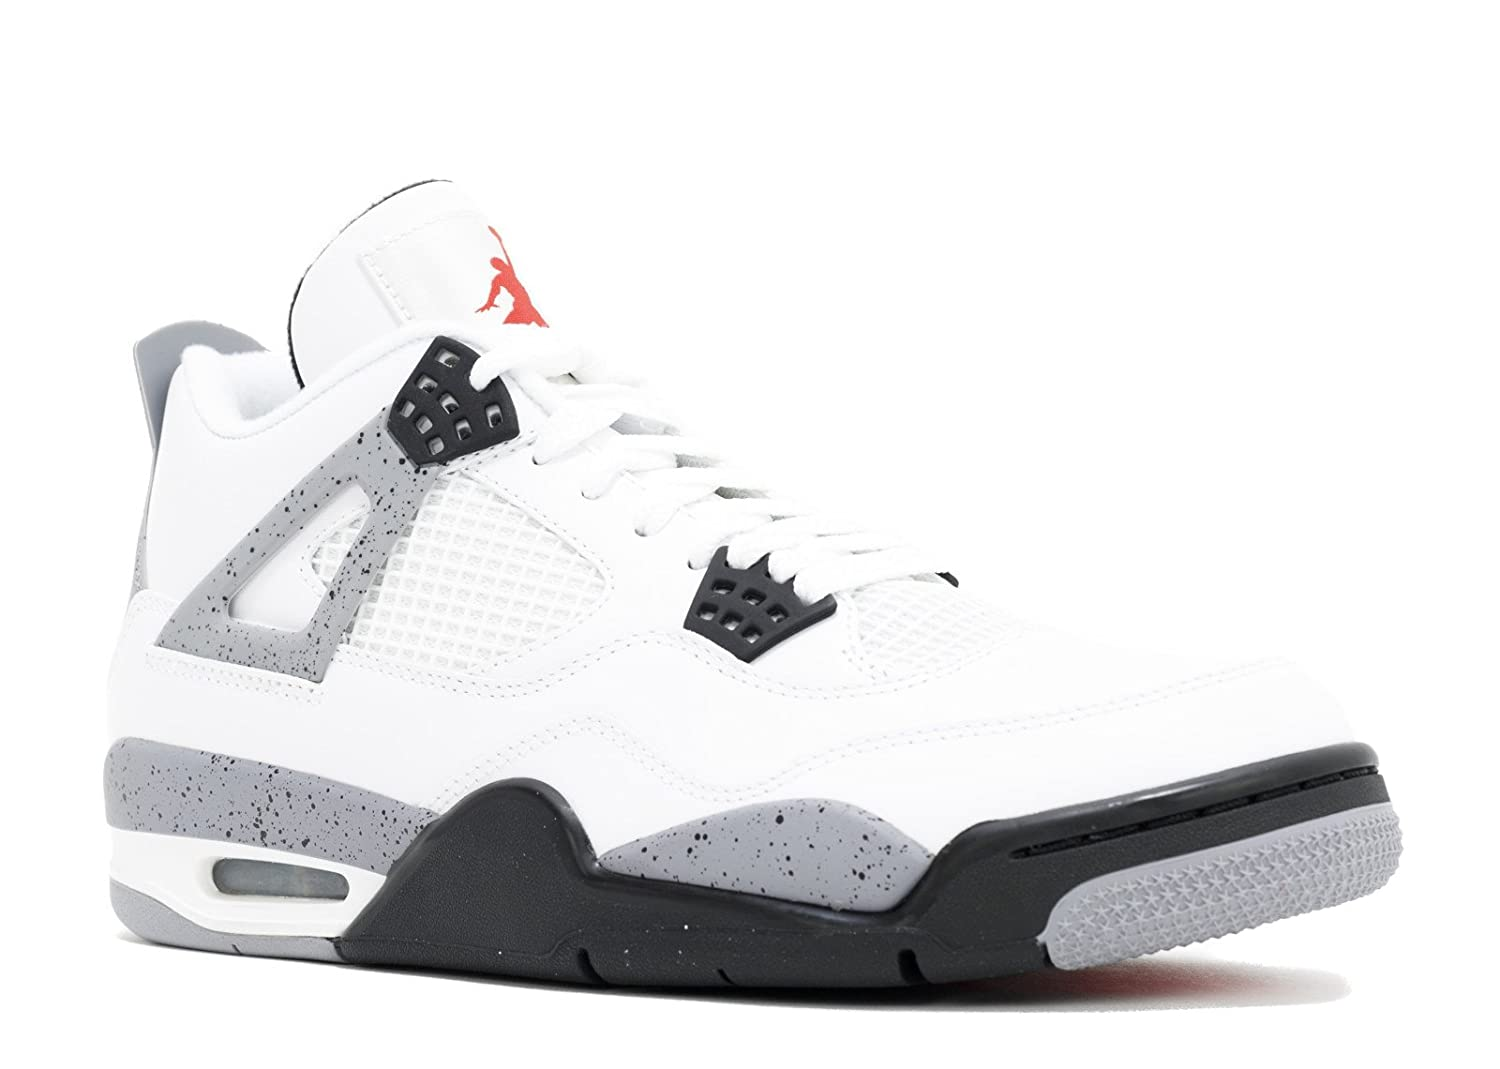 pretty nice 5ee2f d1ce1 Amazon.com   Nike Air Jordan 4 Retro White Cement 308497-103 Basketball  Sneaker Men sz 7.5   Basketball